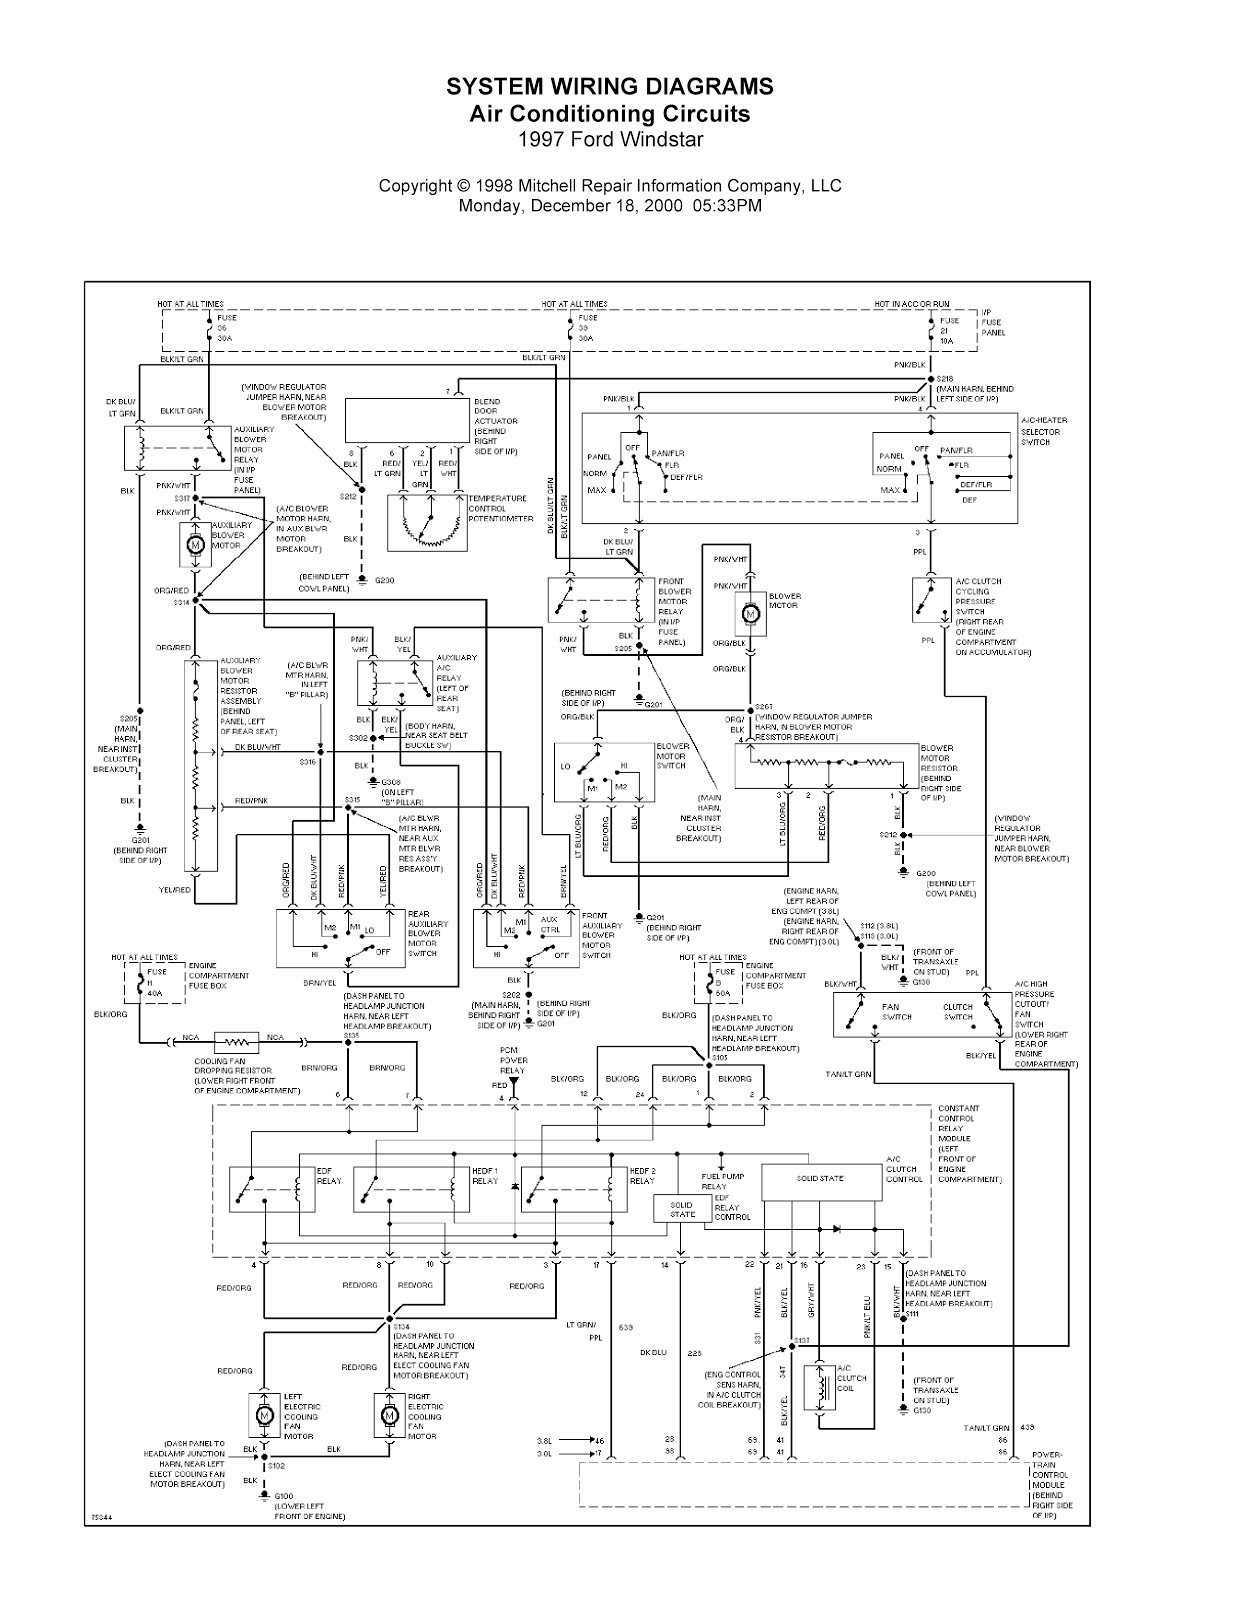 2001 Sable Fuse Box Diagram Wiring Library Mercury Schematic Engine Also Free Image About And